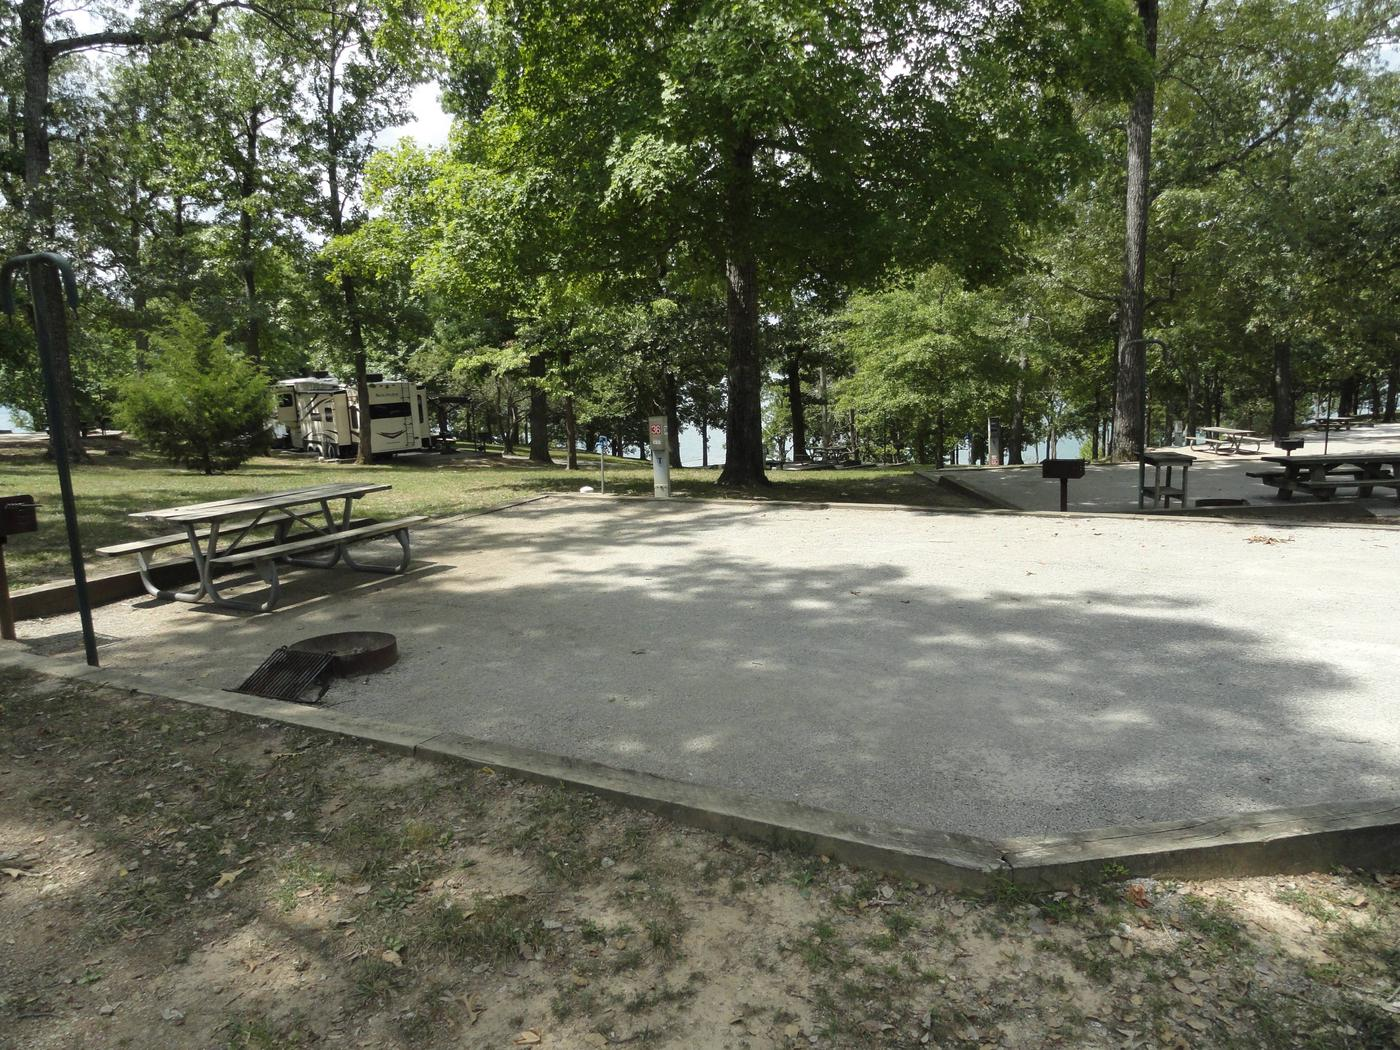 WILLOW GROVE CAMPGROUND SITE #36